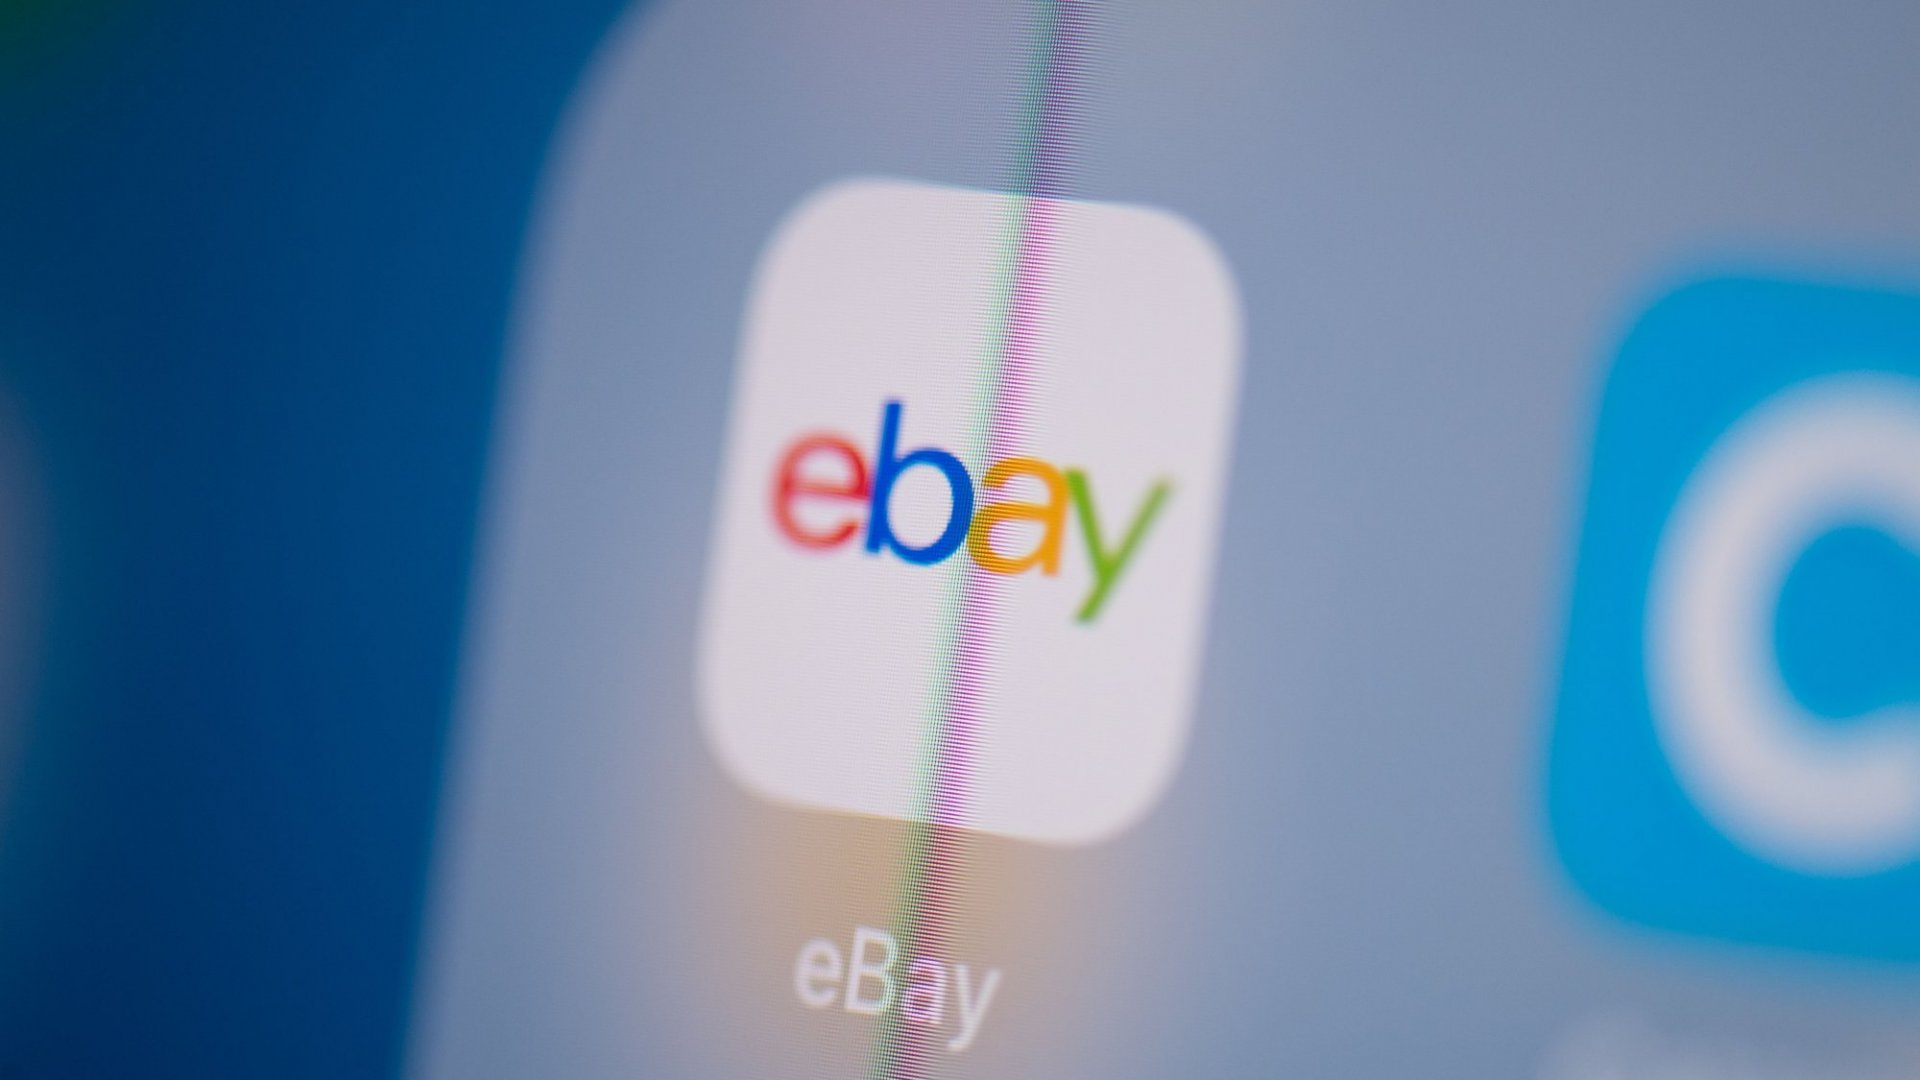 In a Lawsuit, eBay Just Accused Amazon of Poaching Scores of Sellers